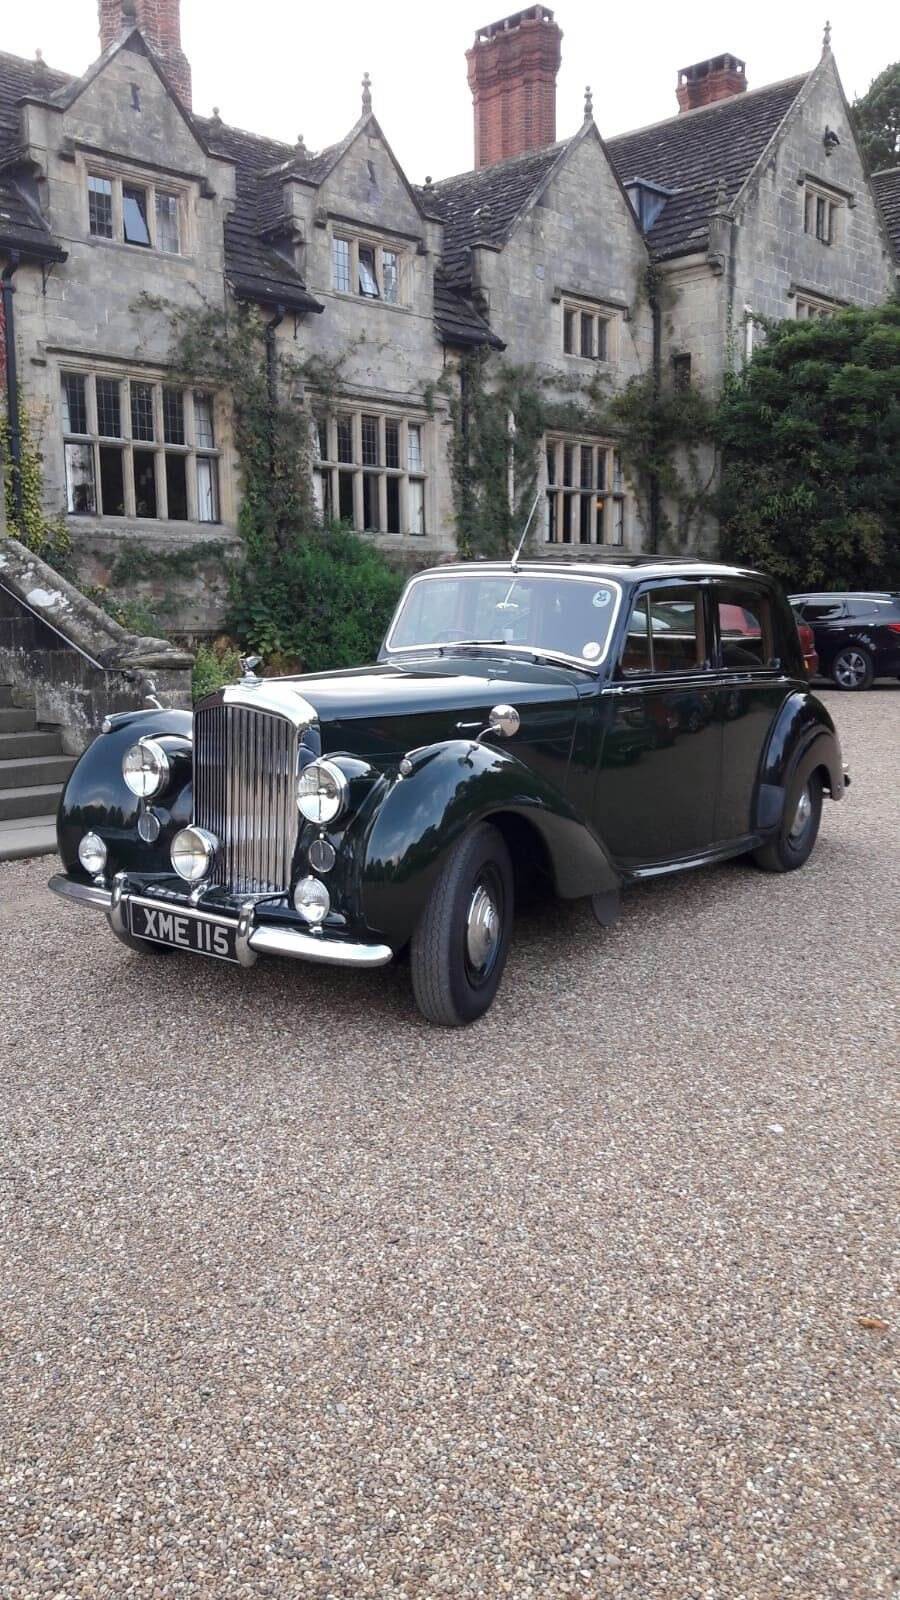 1952 Bentley 4.5 litre Mk v1 For Sale (picture 1 of 6)